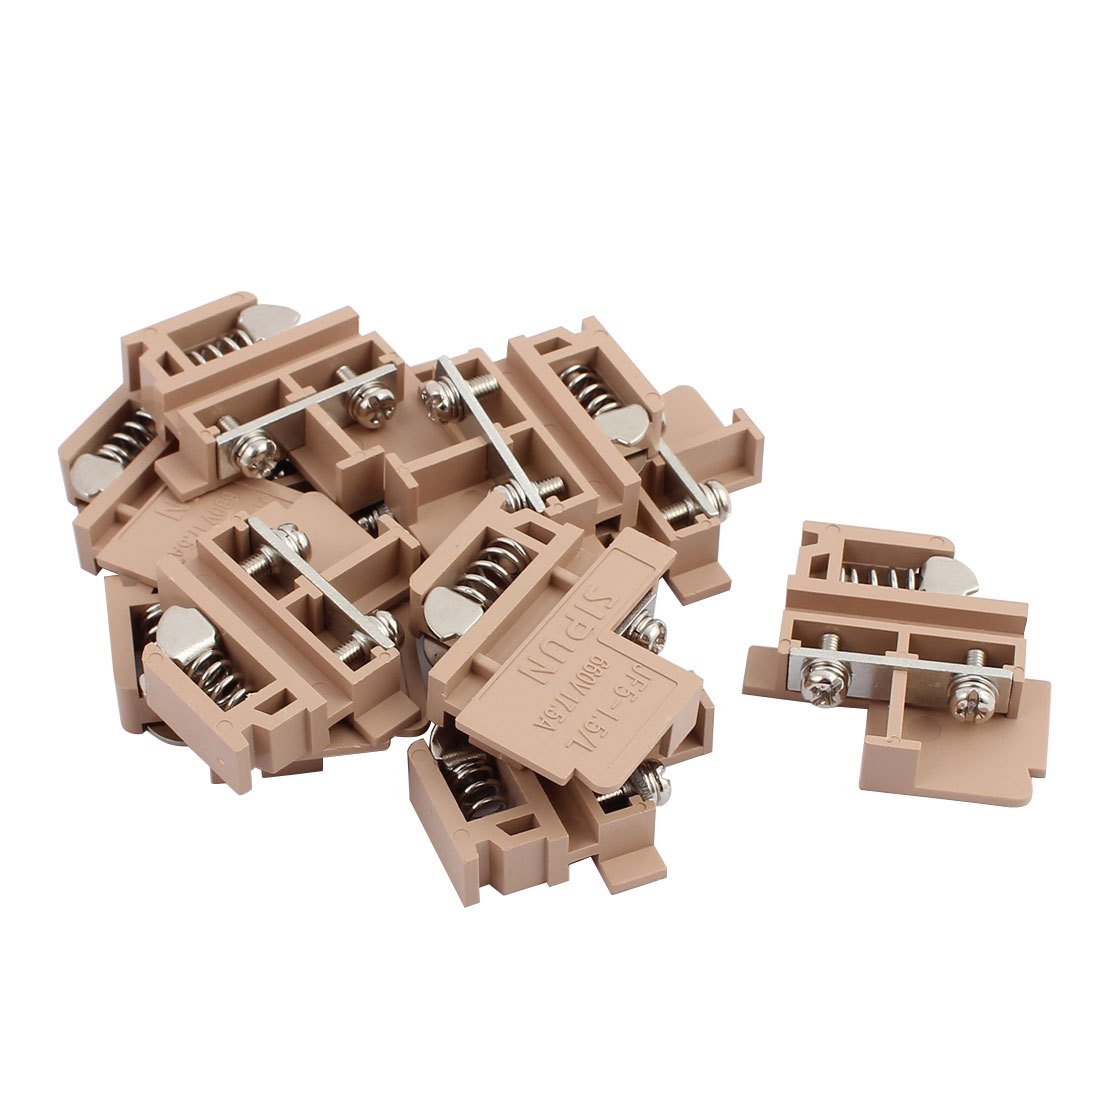 10Pcs JF5-1.5L 660V 17.5A Rail Mount 1.5mm2 Cable Contact Type Terminal Blocks Brown